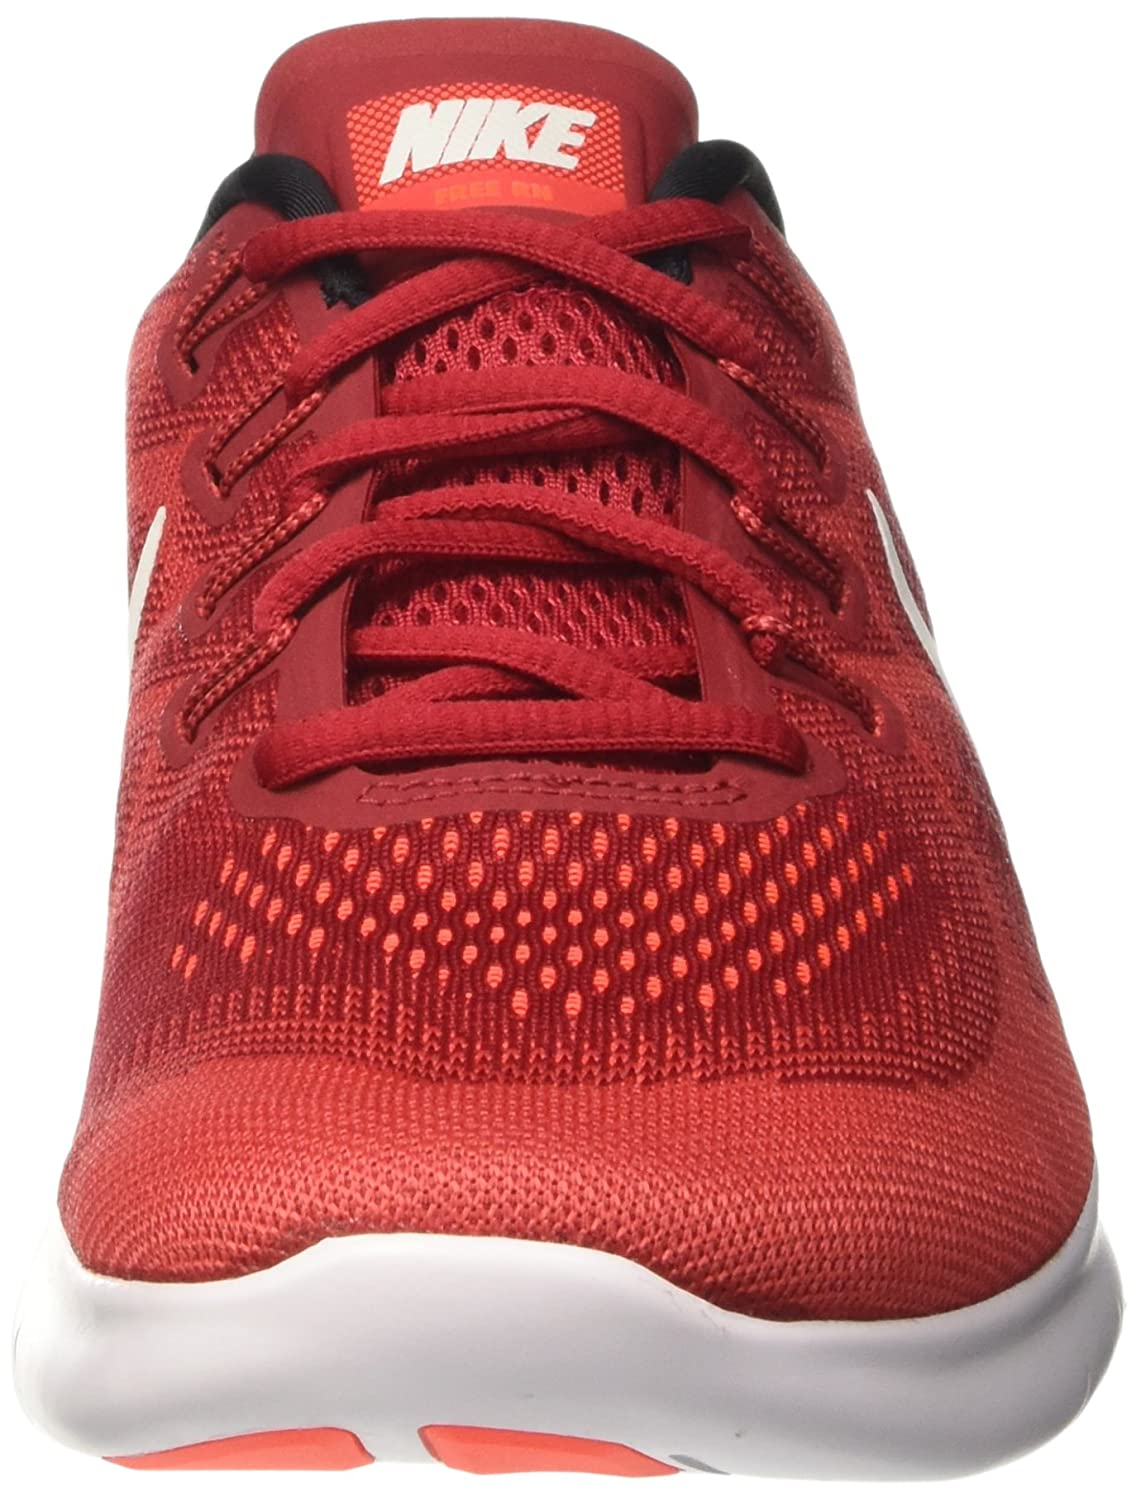 NIKE Men's Free RN Running Shoe Red/Off B01JZQSSLW 11.5 D(M) US|Game Red/Off Shoe White//Track Red dc4ac0